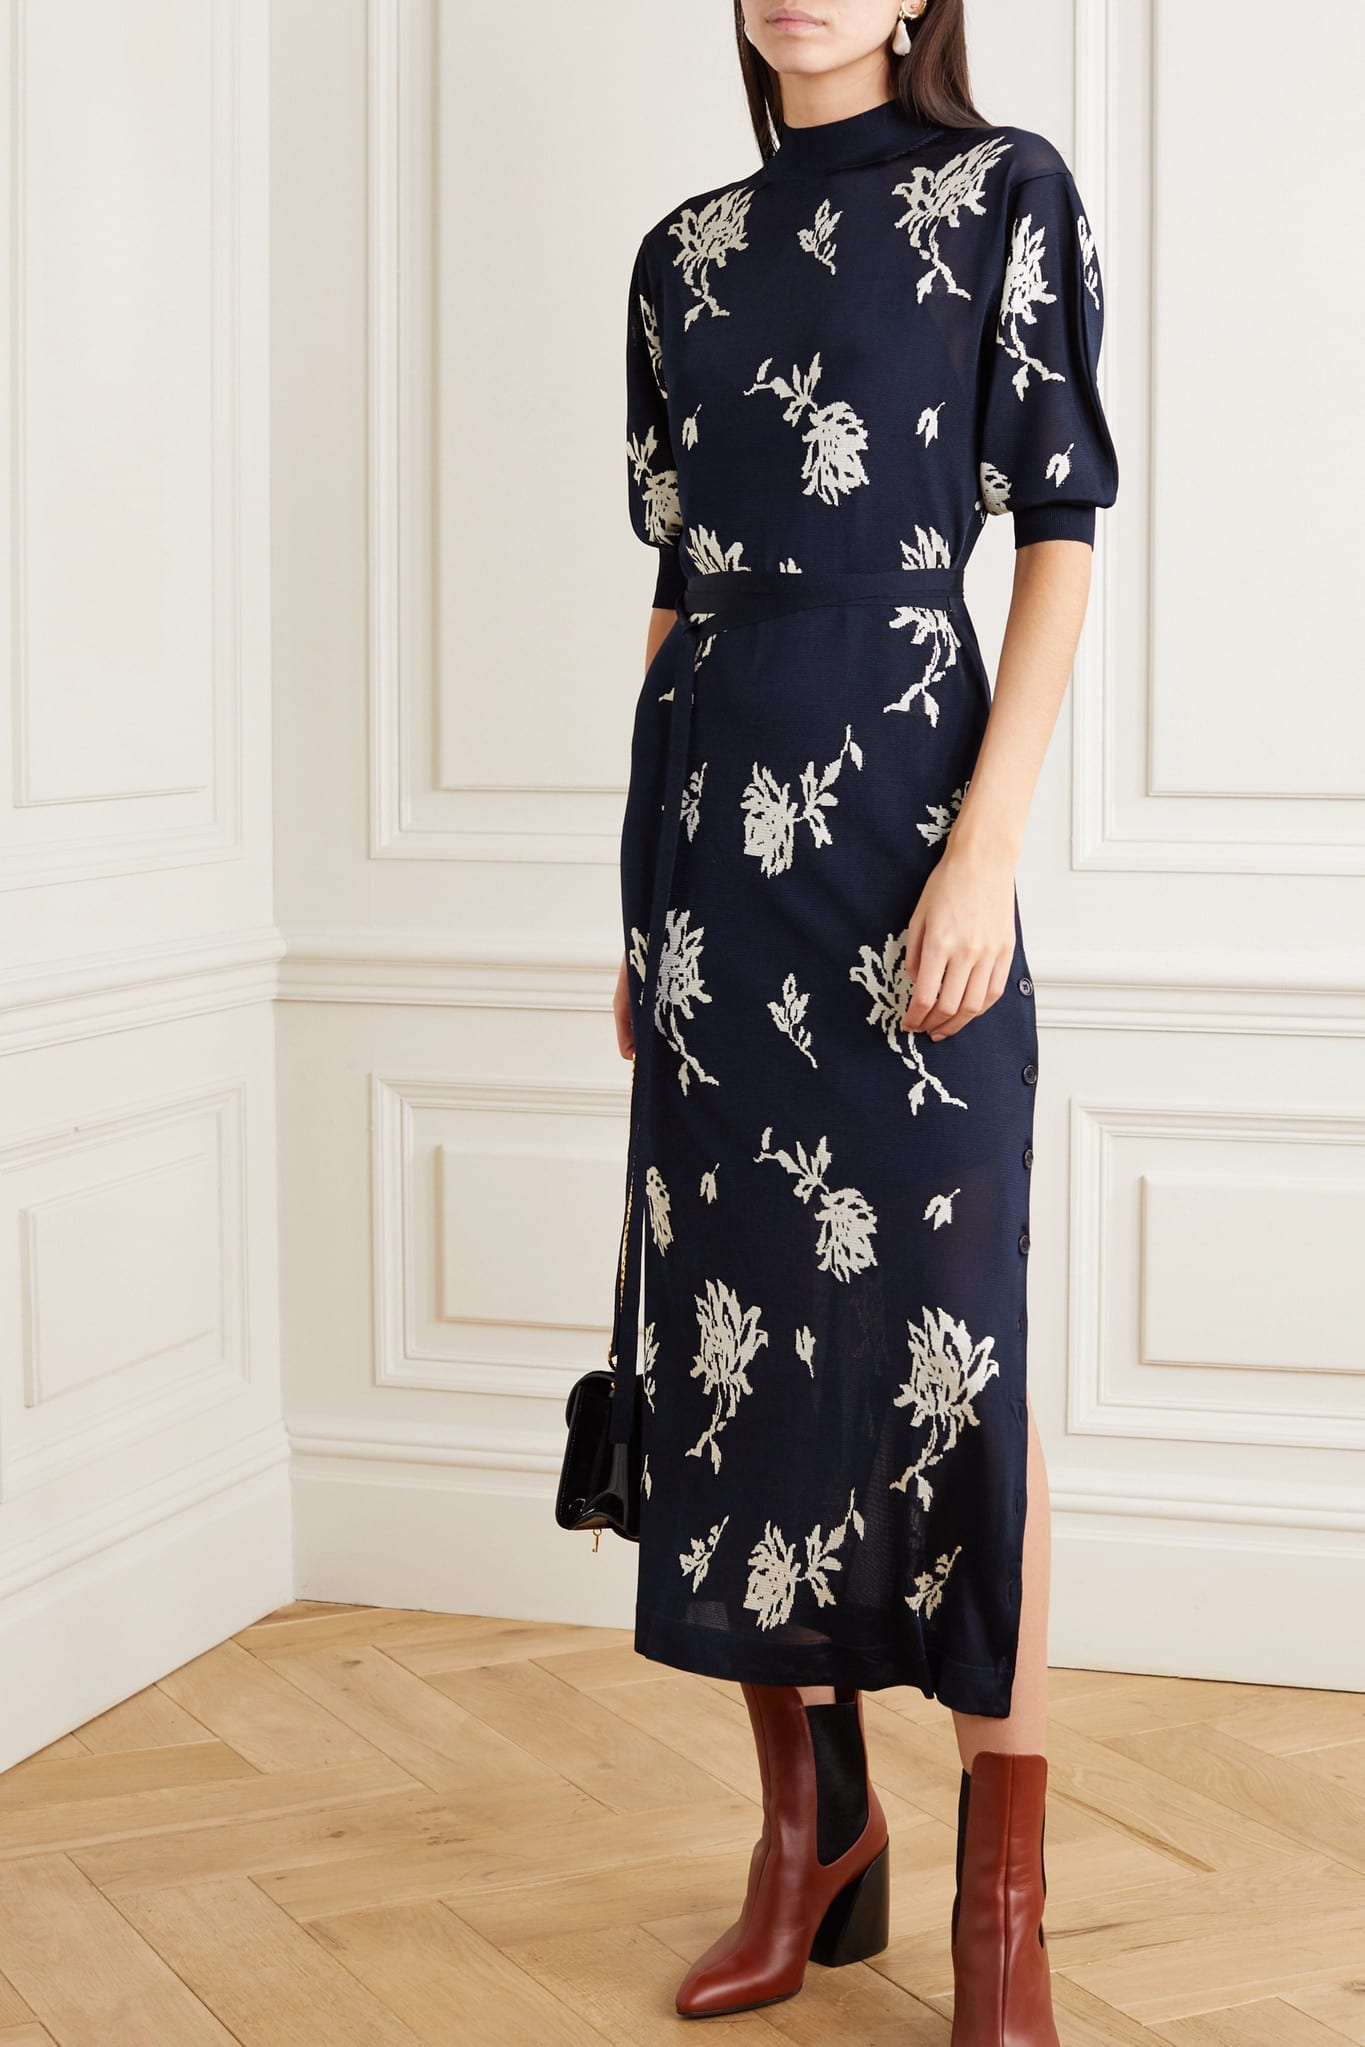 CHLOÉ Jacquard-knit Midi Dress